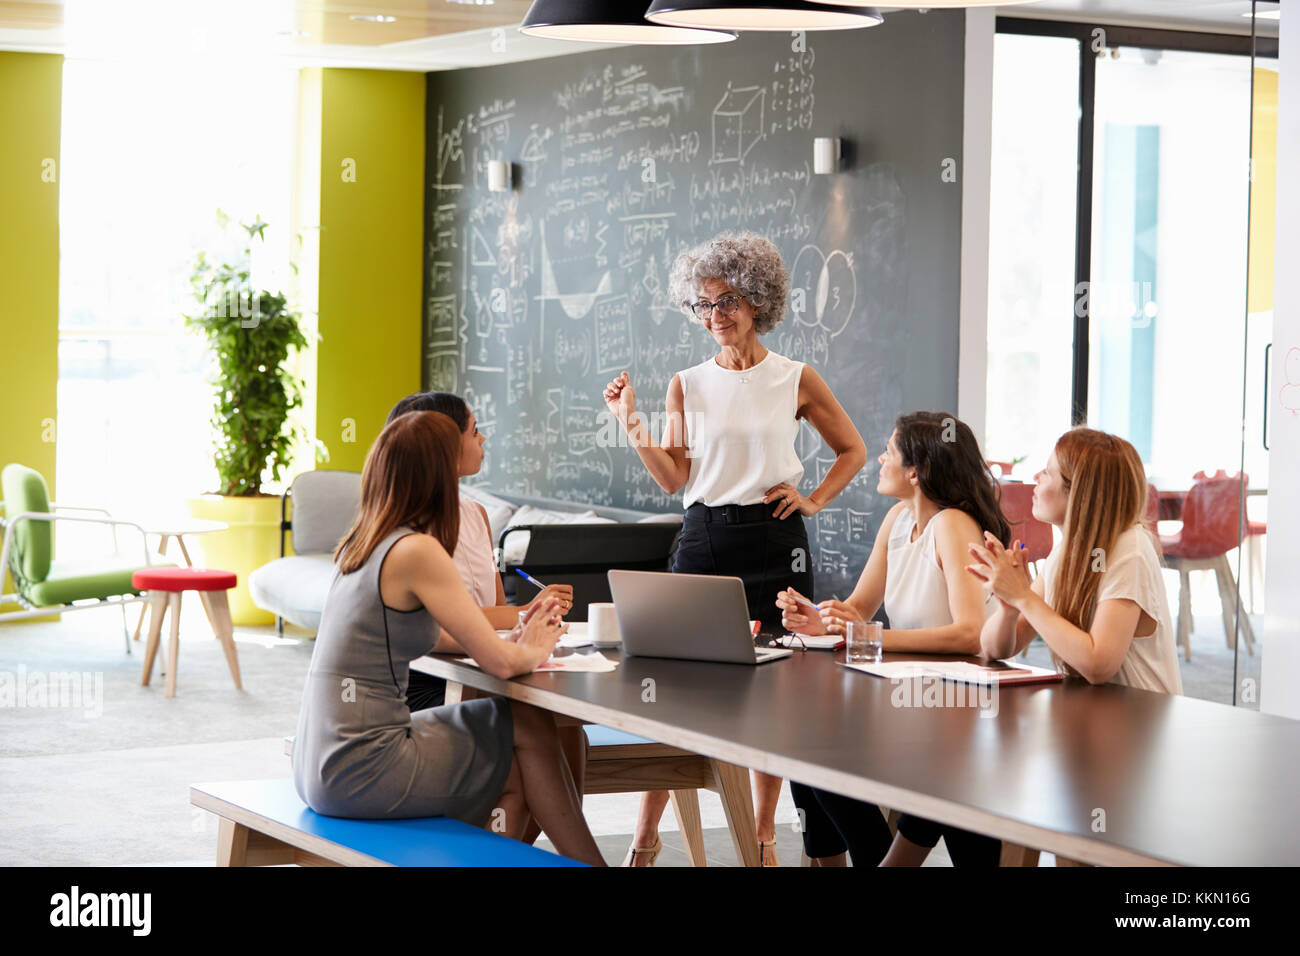 Female boss standing at an informal team meeting - Stock Image